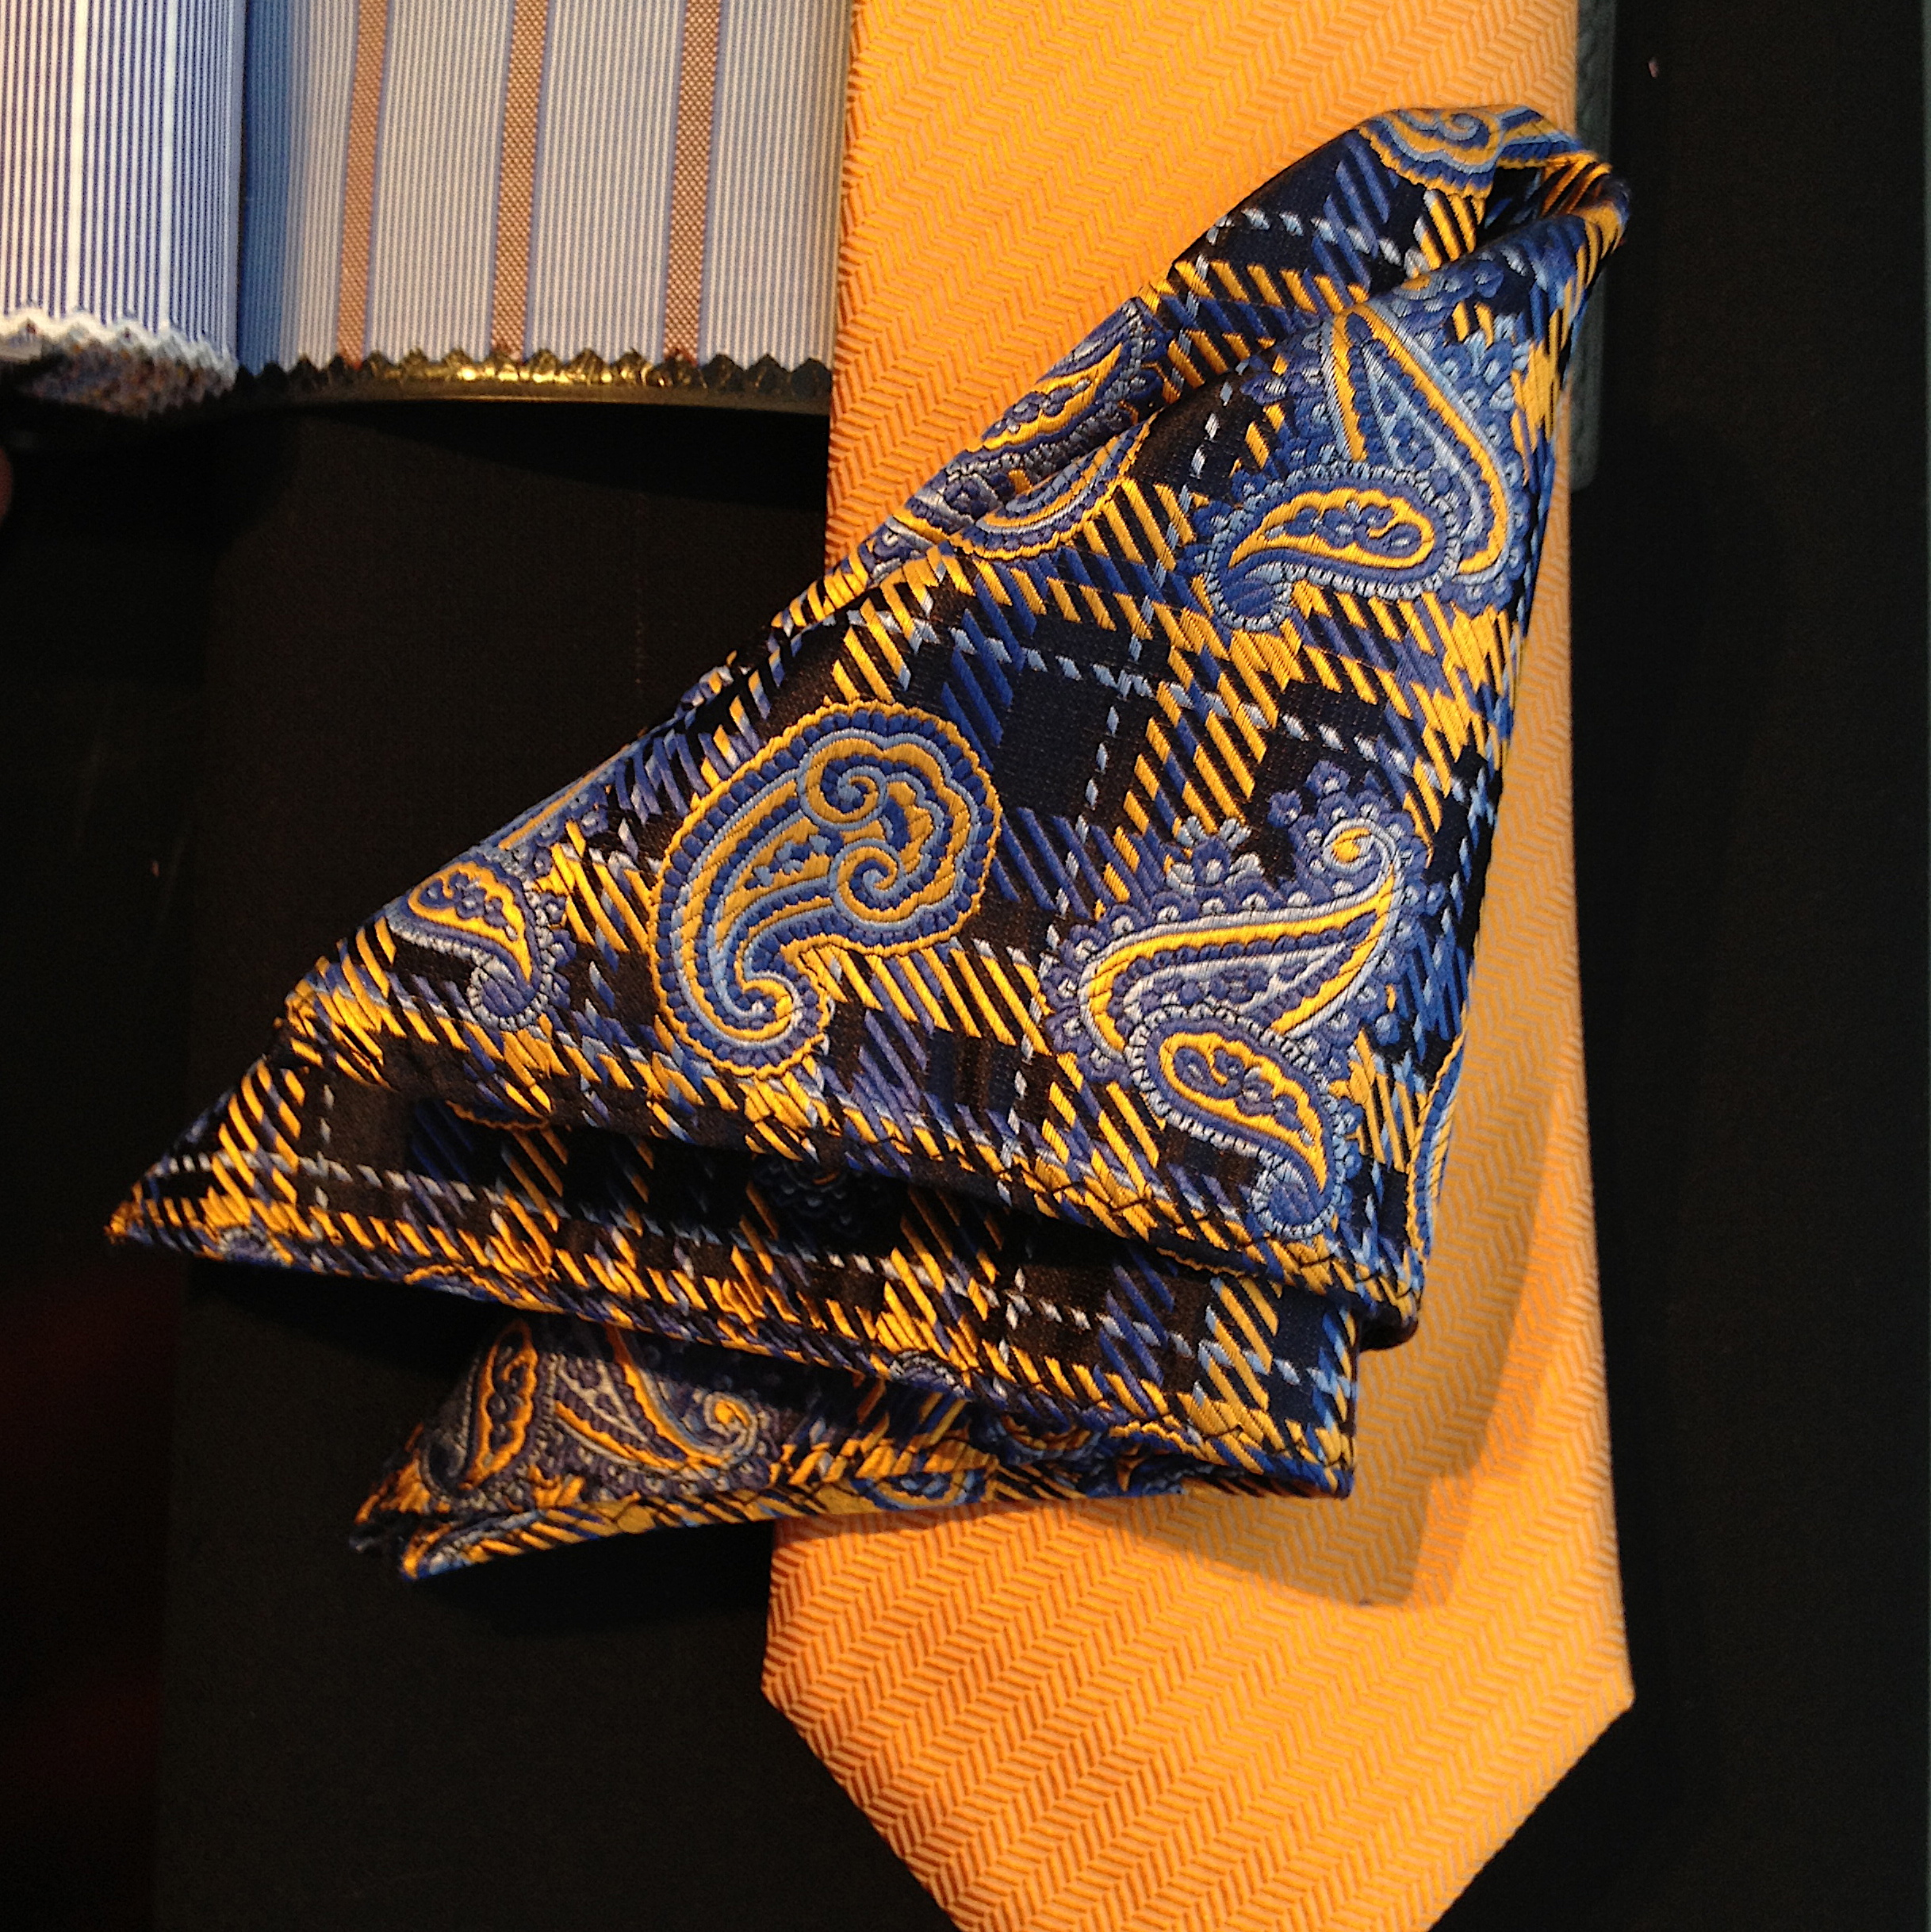 NELSON WADE, custom bespoke silk ties and silk pocket square.